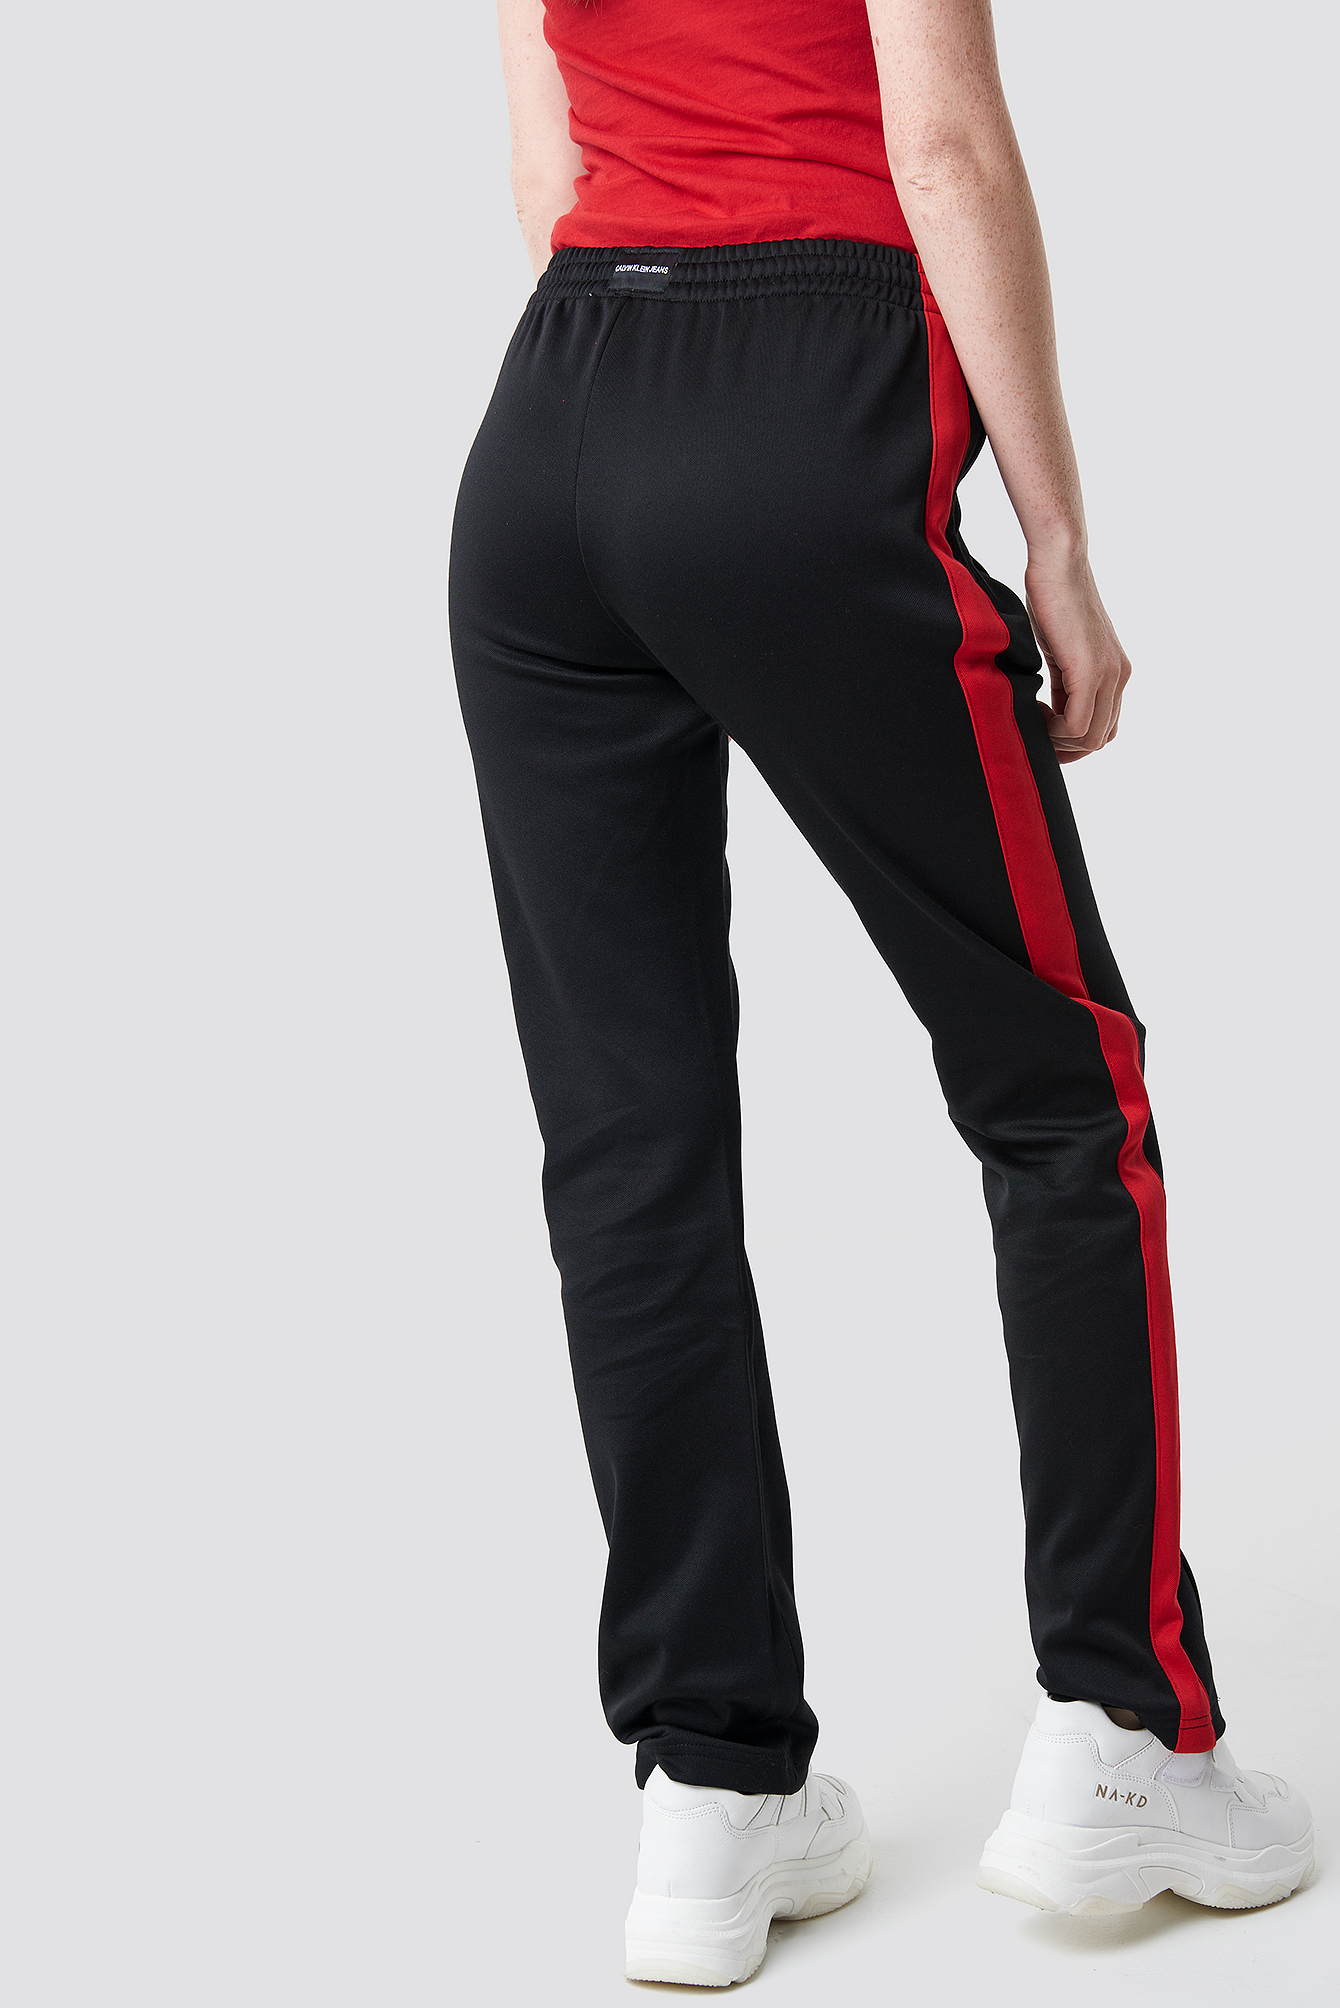 Pant Ck Stripe Red Hr Side Na Blackracing Track zxfwtIZ